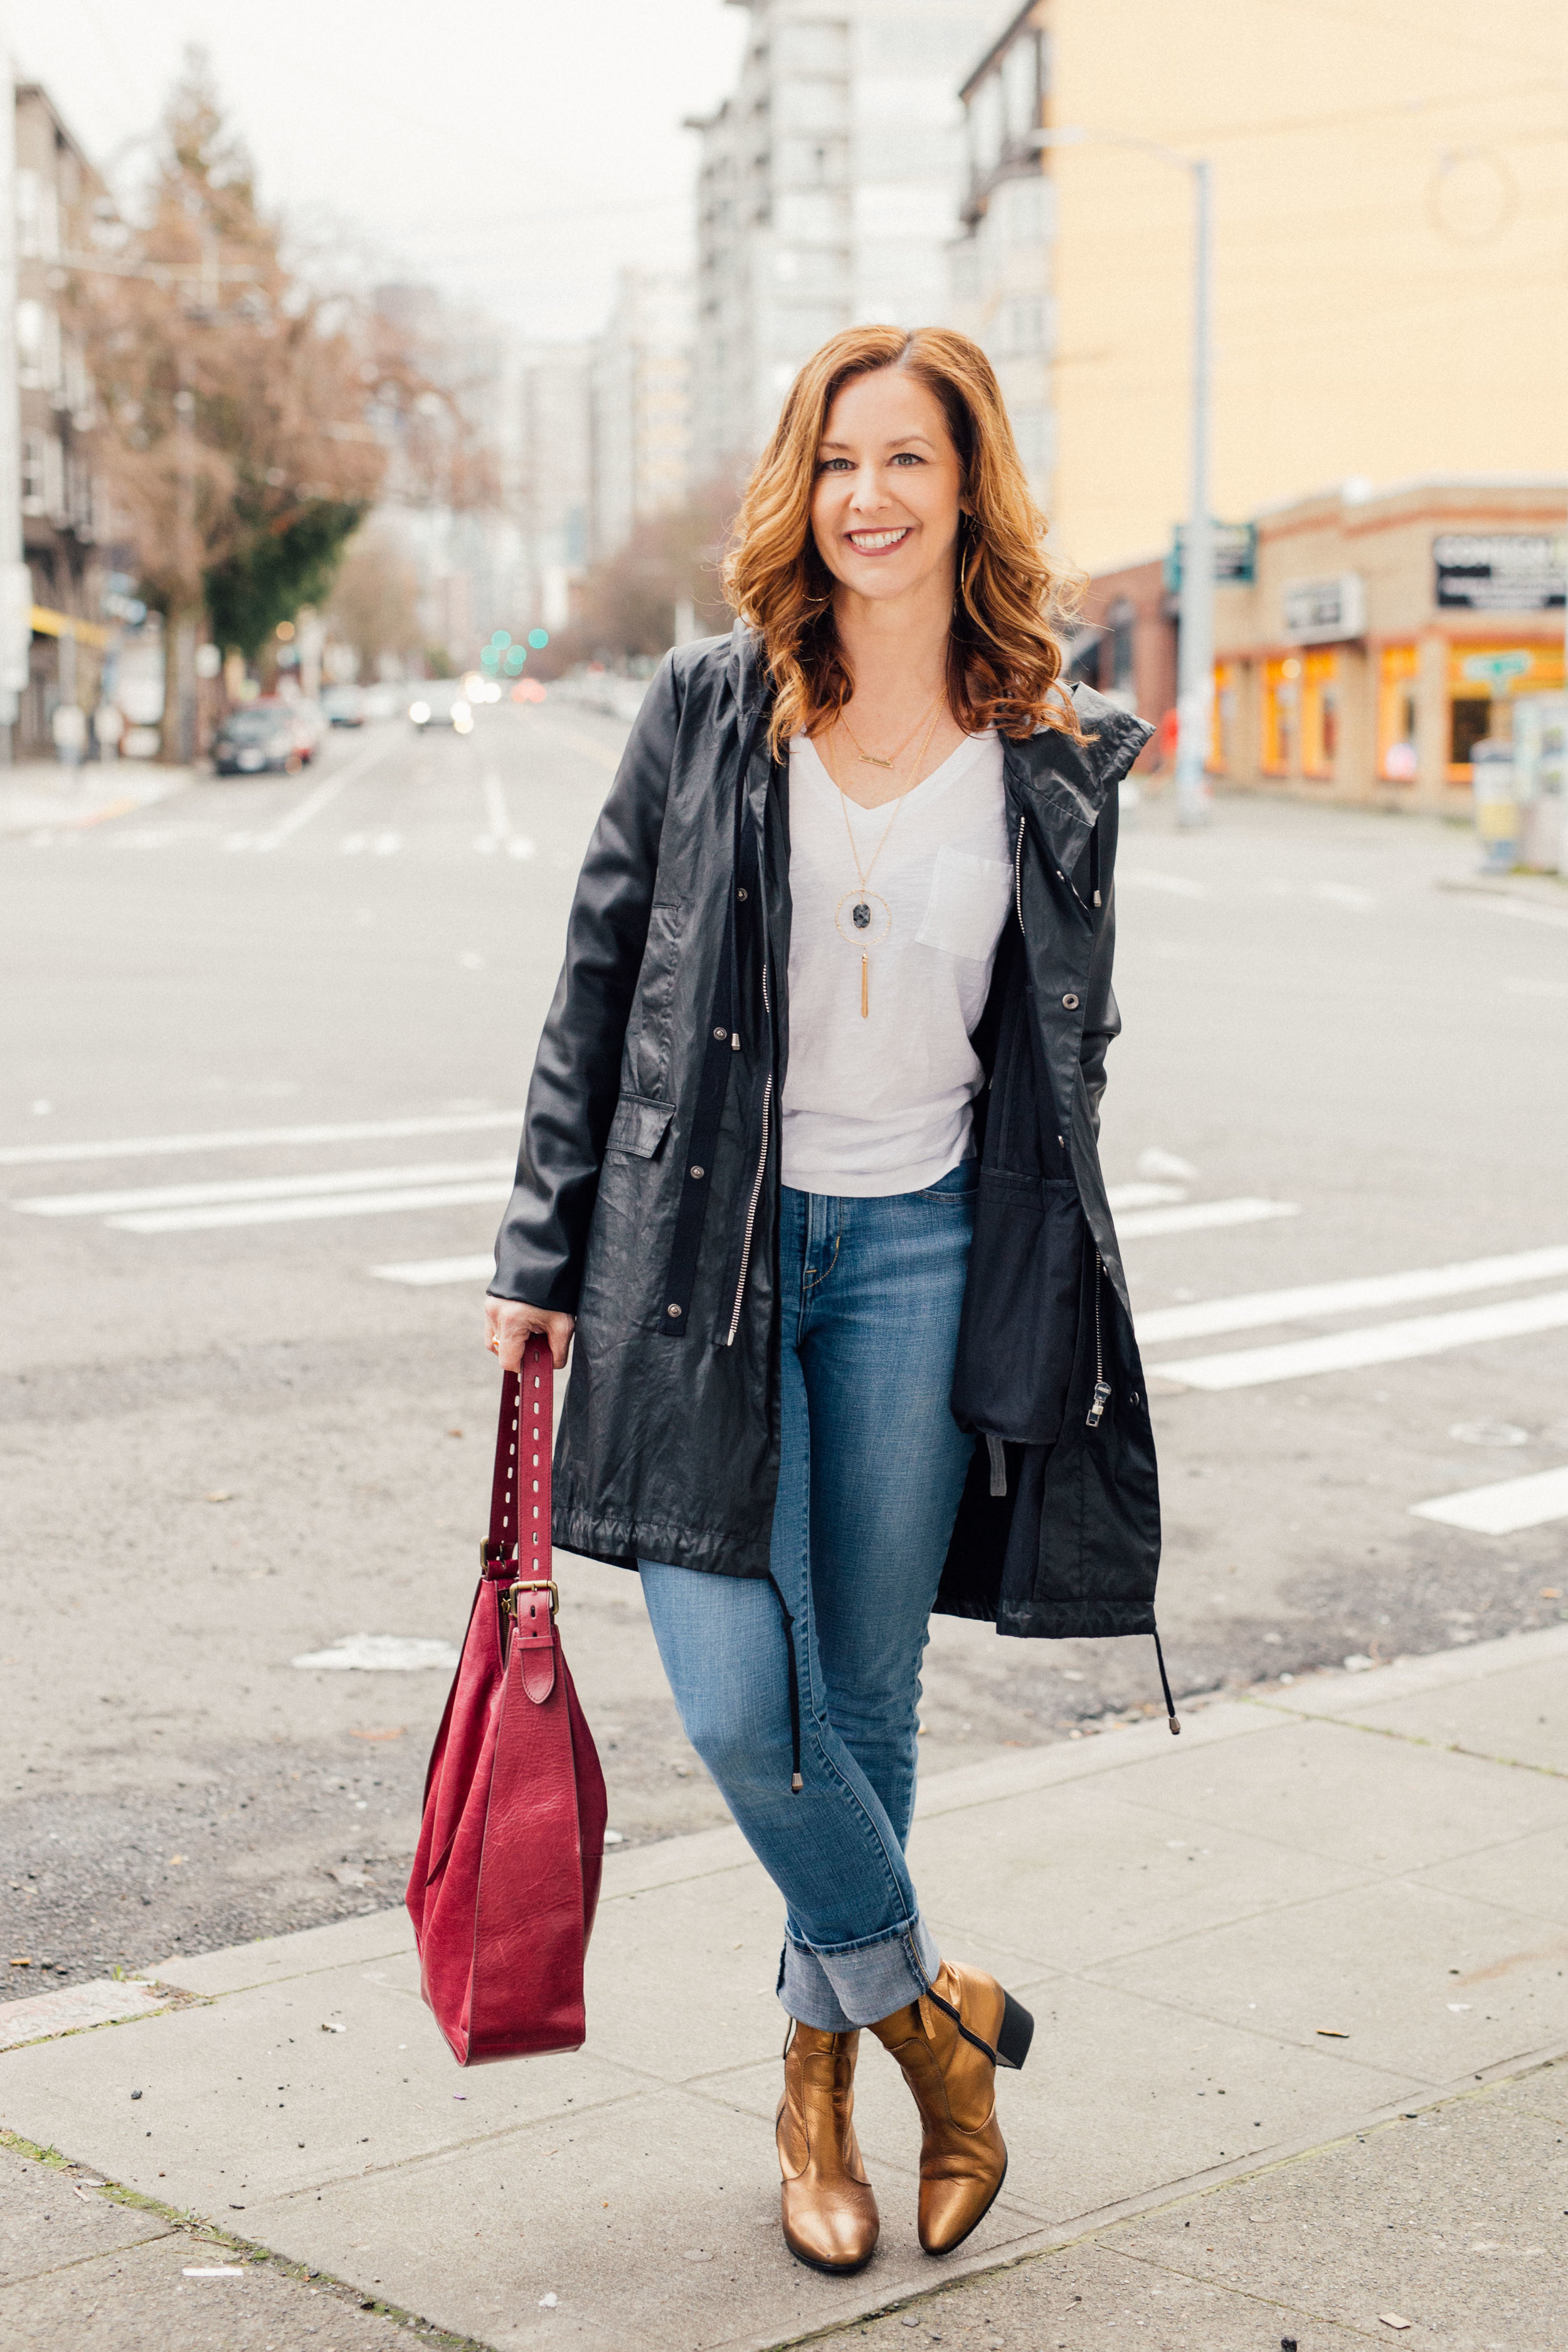 Poplin client Julie is rocking her Top Shop booties in this image from our photo shoot last year. See more about Julie on the Client Stories page. Photo by Amy Paine. Hair and Makeup by  Kat St. John.